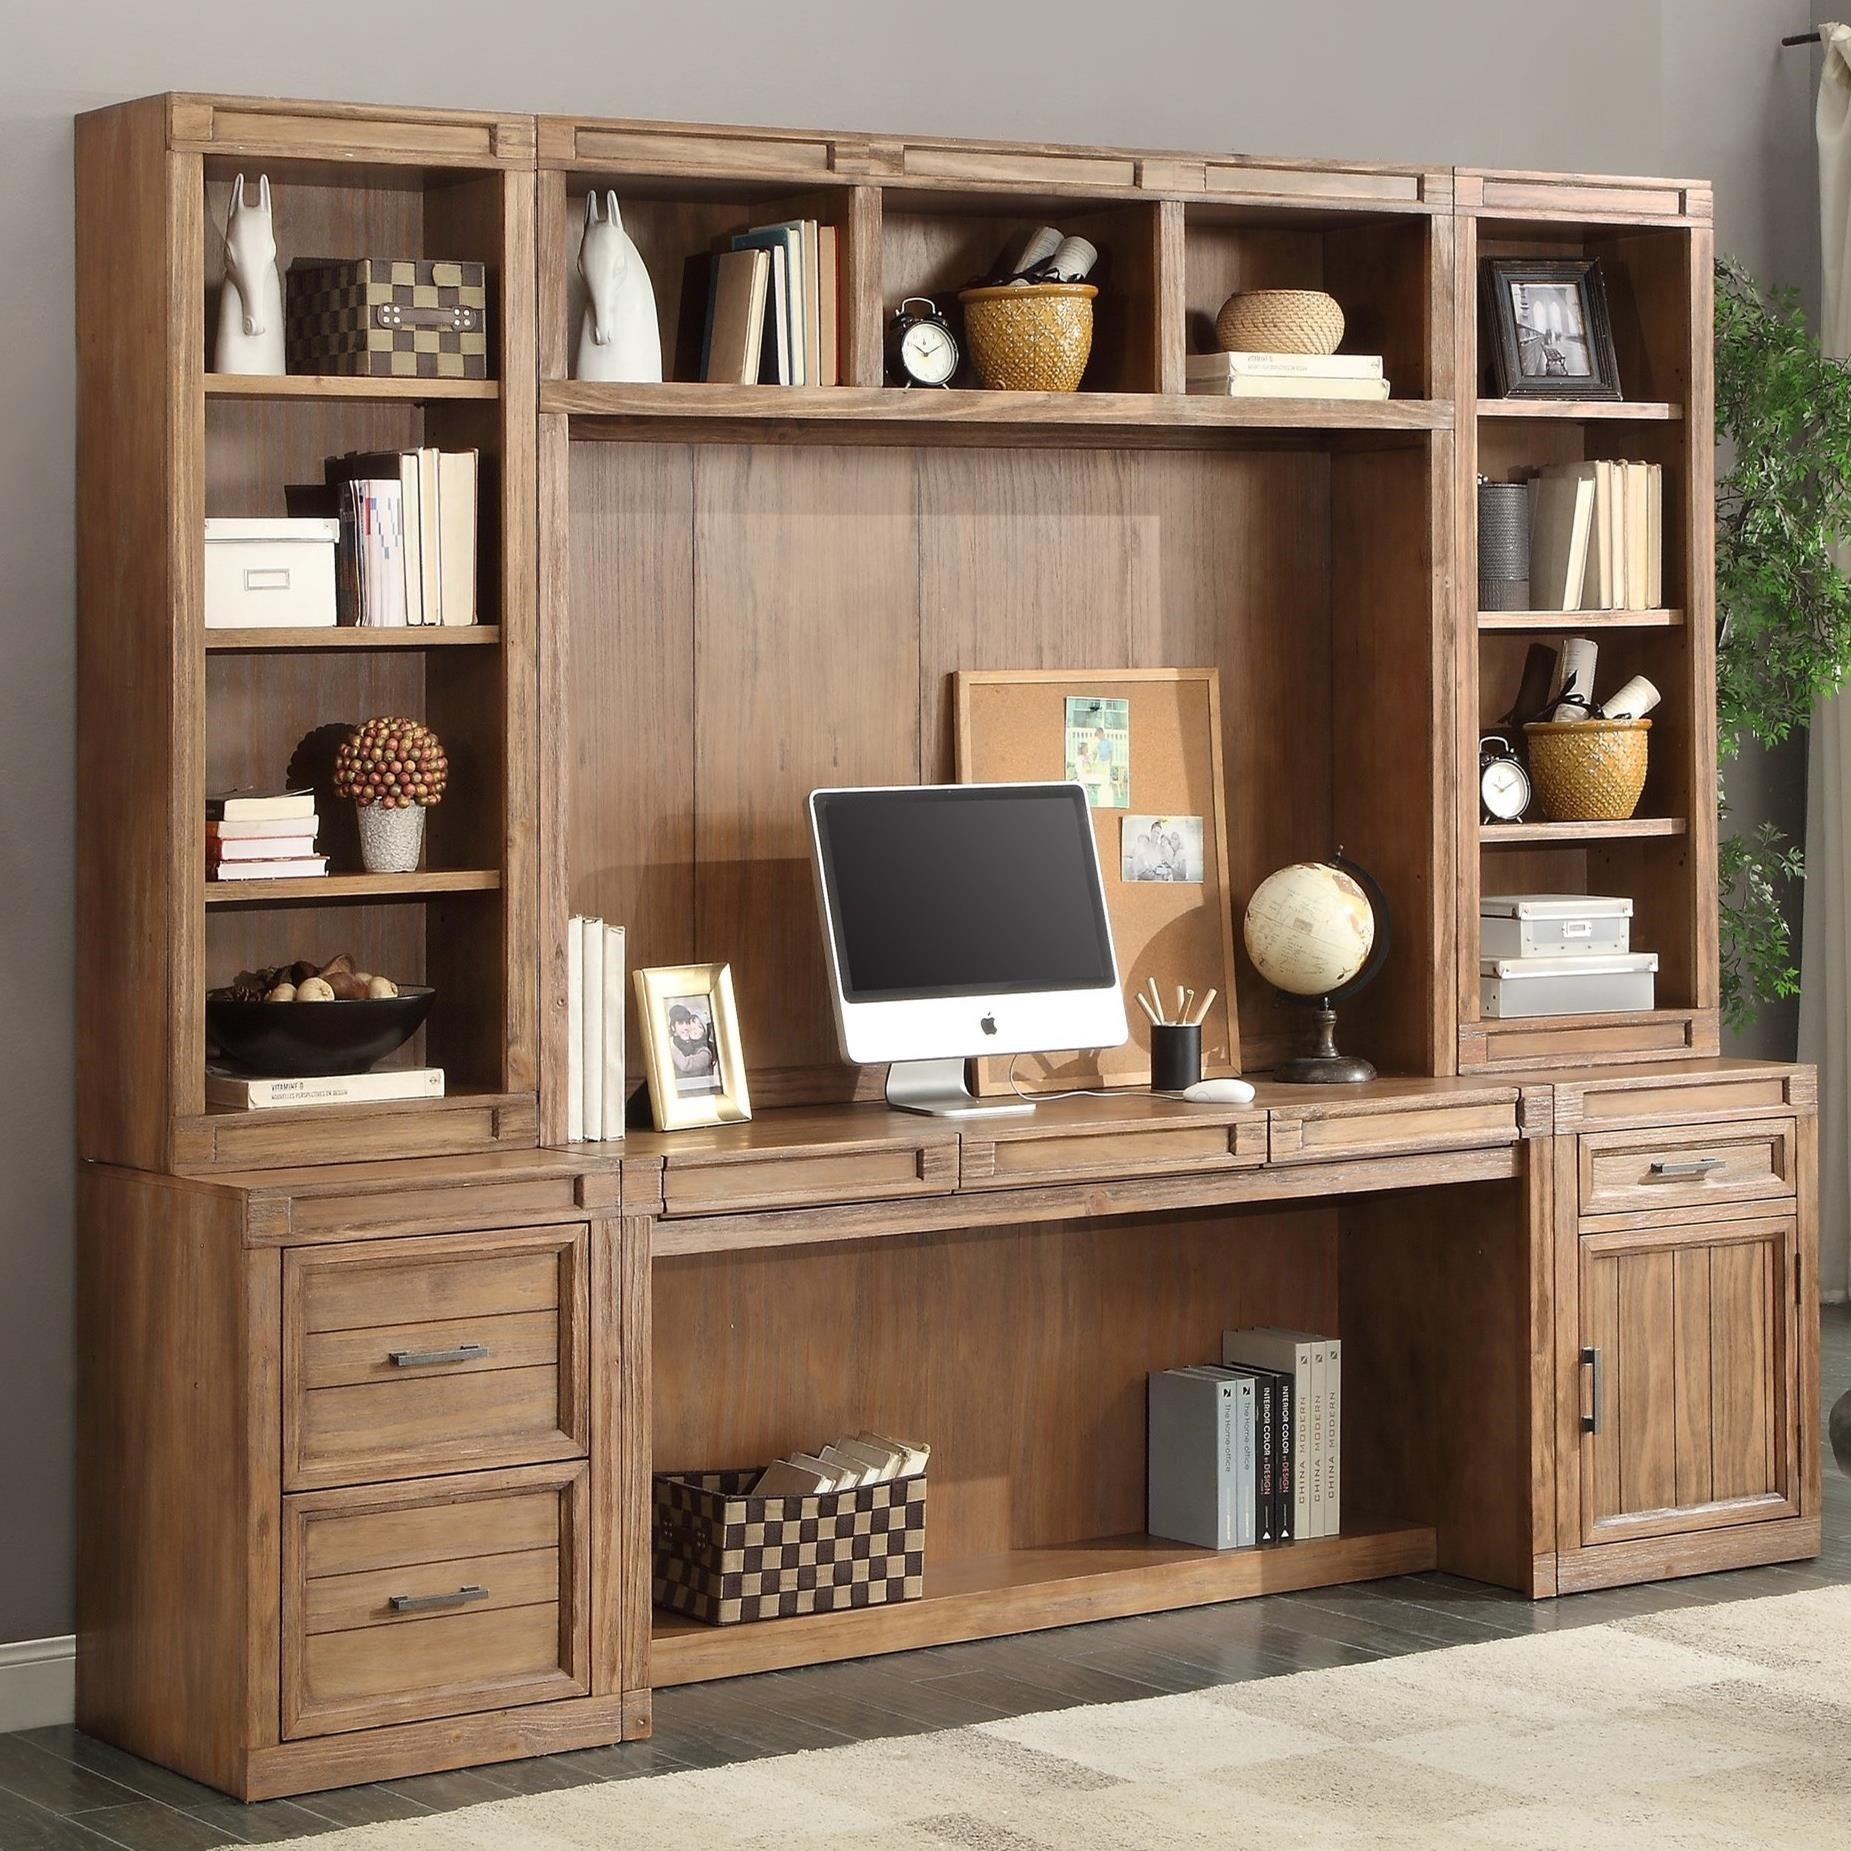 Parker House Hickory Creek 6 Piece Desk and Hutch Set - Item Number: HIC-6-OFFICE